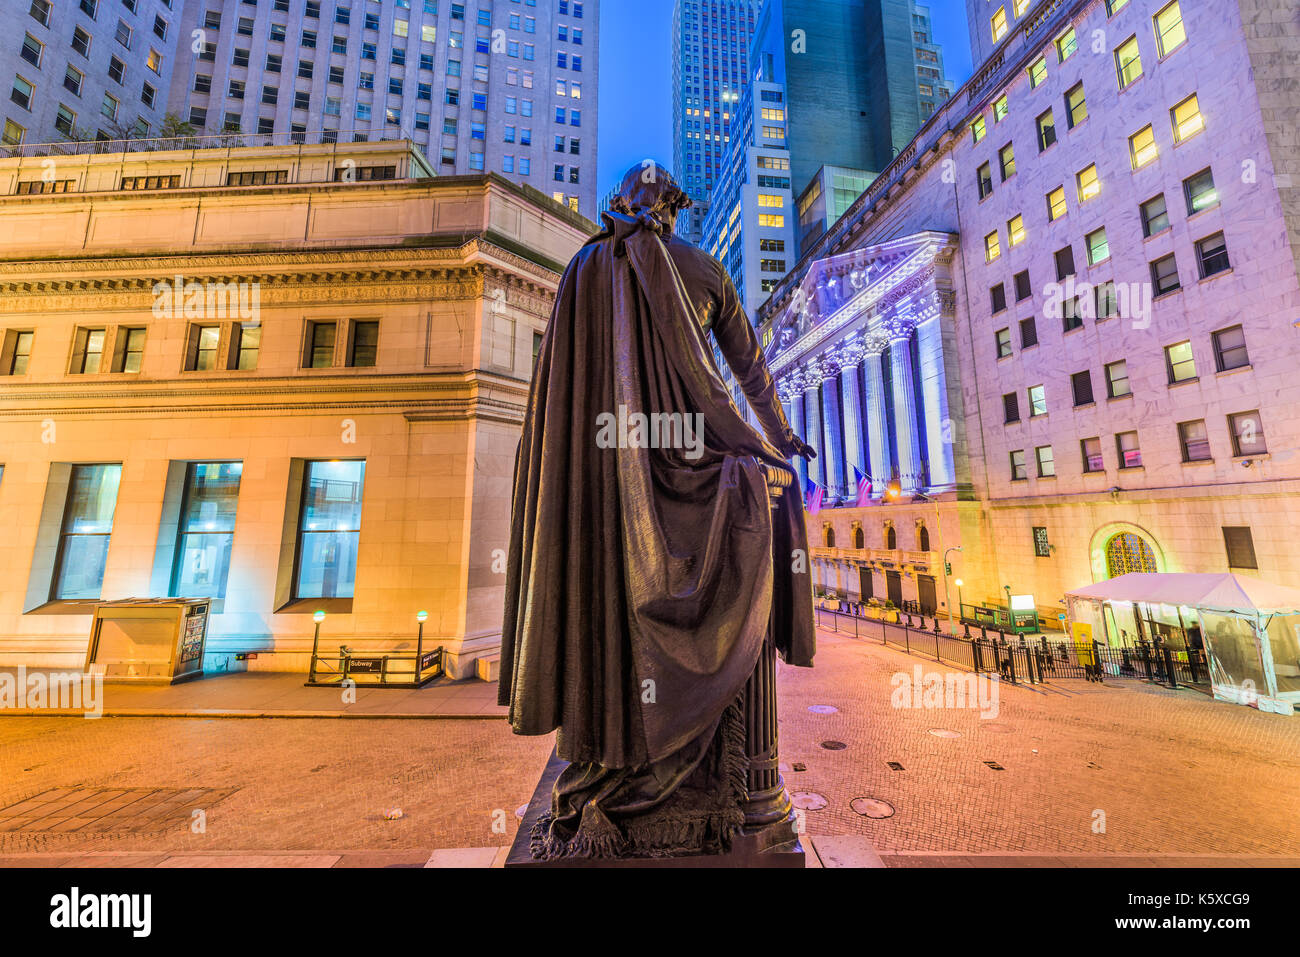 New York City, USA on Wall Street from Federal Hall in Lower Manhattan. Stock Photo